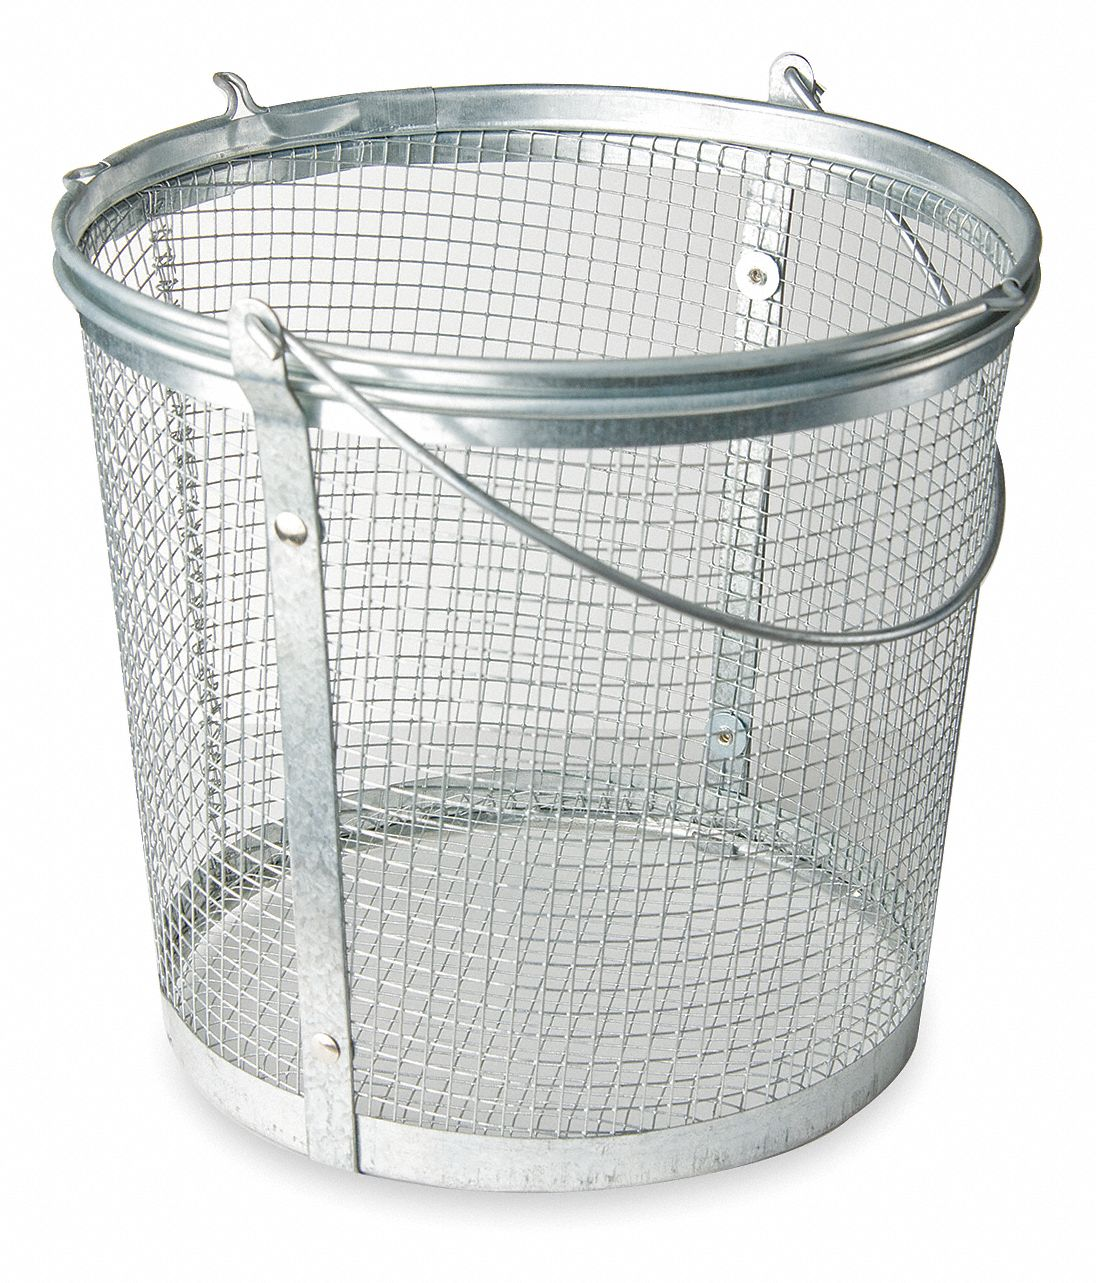 Galvanized Steel Parts Washer Basket, Gray